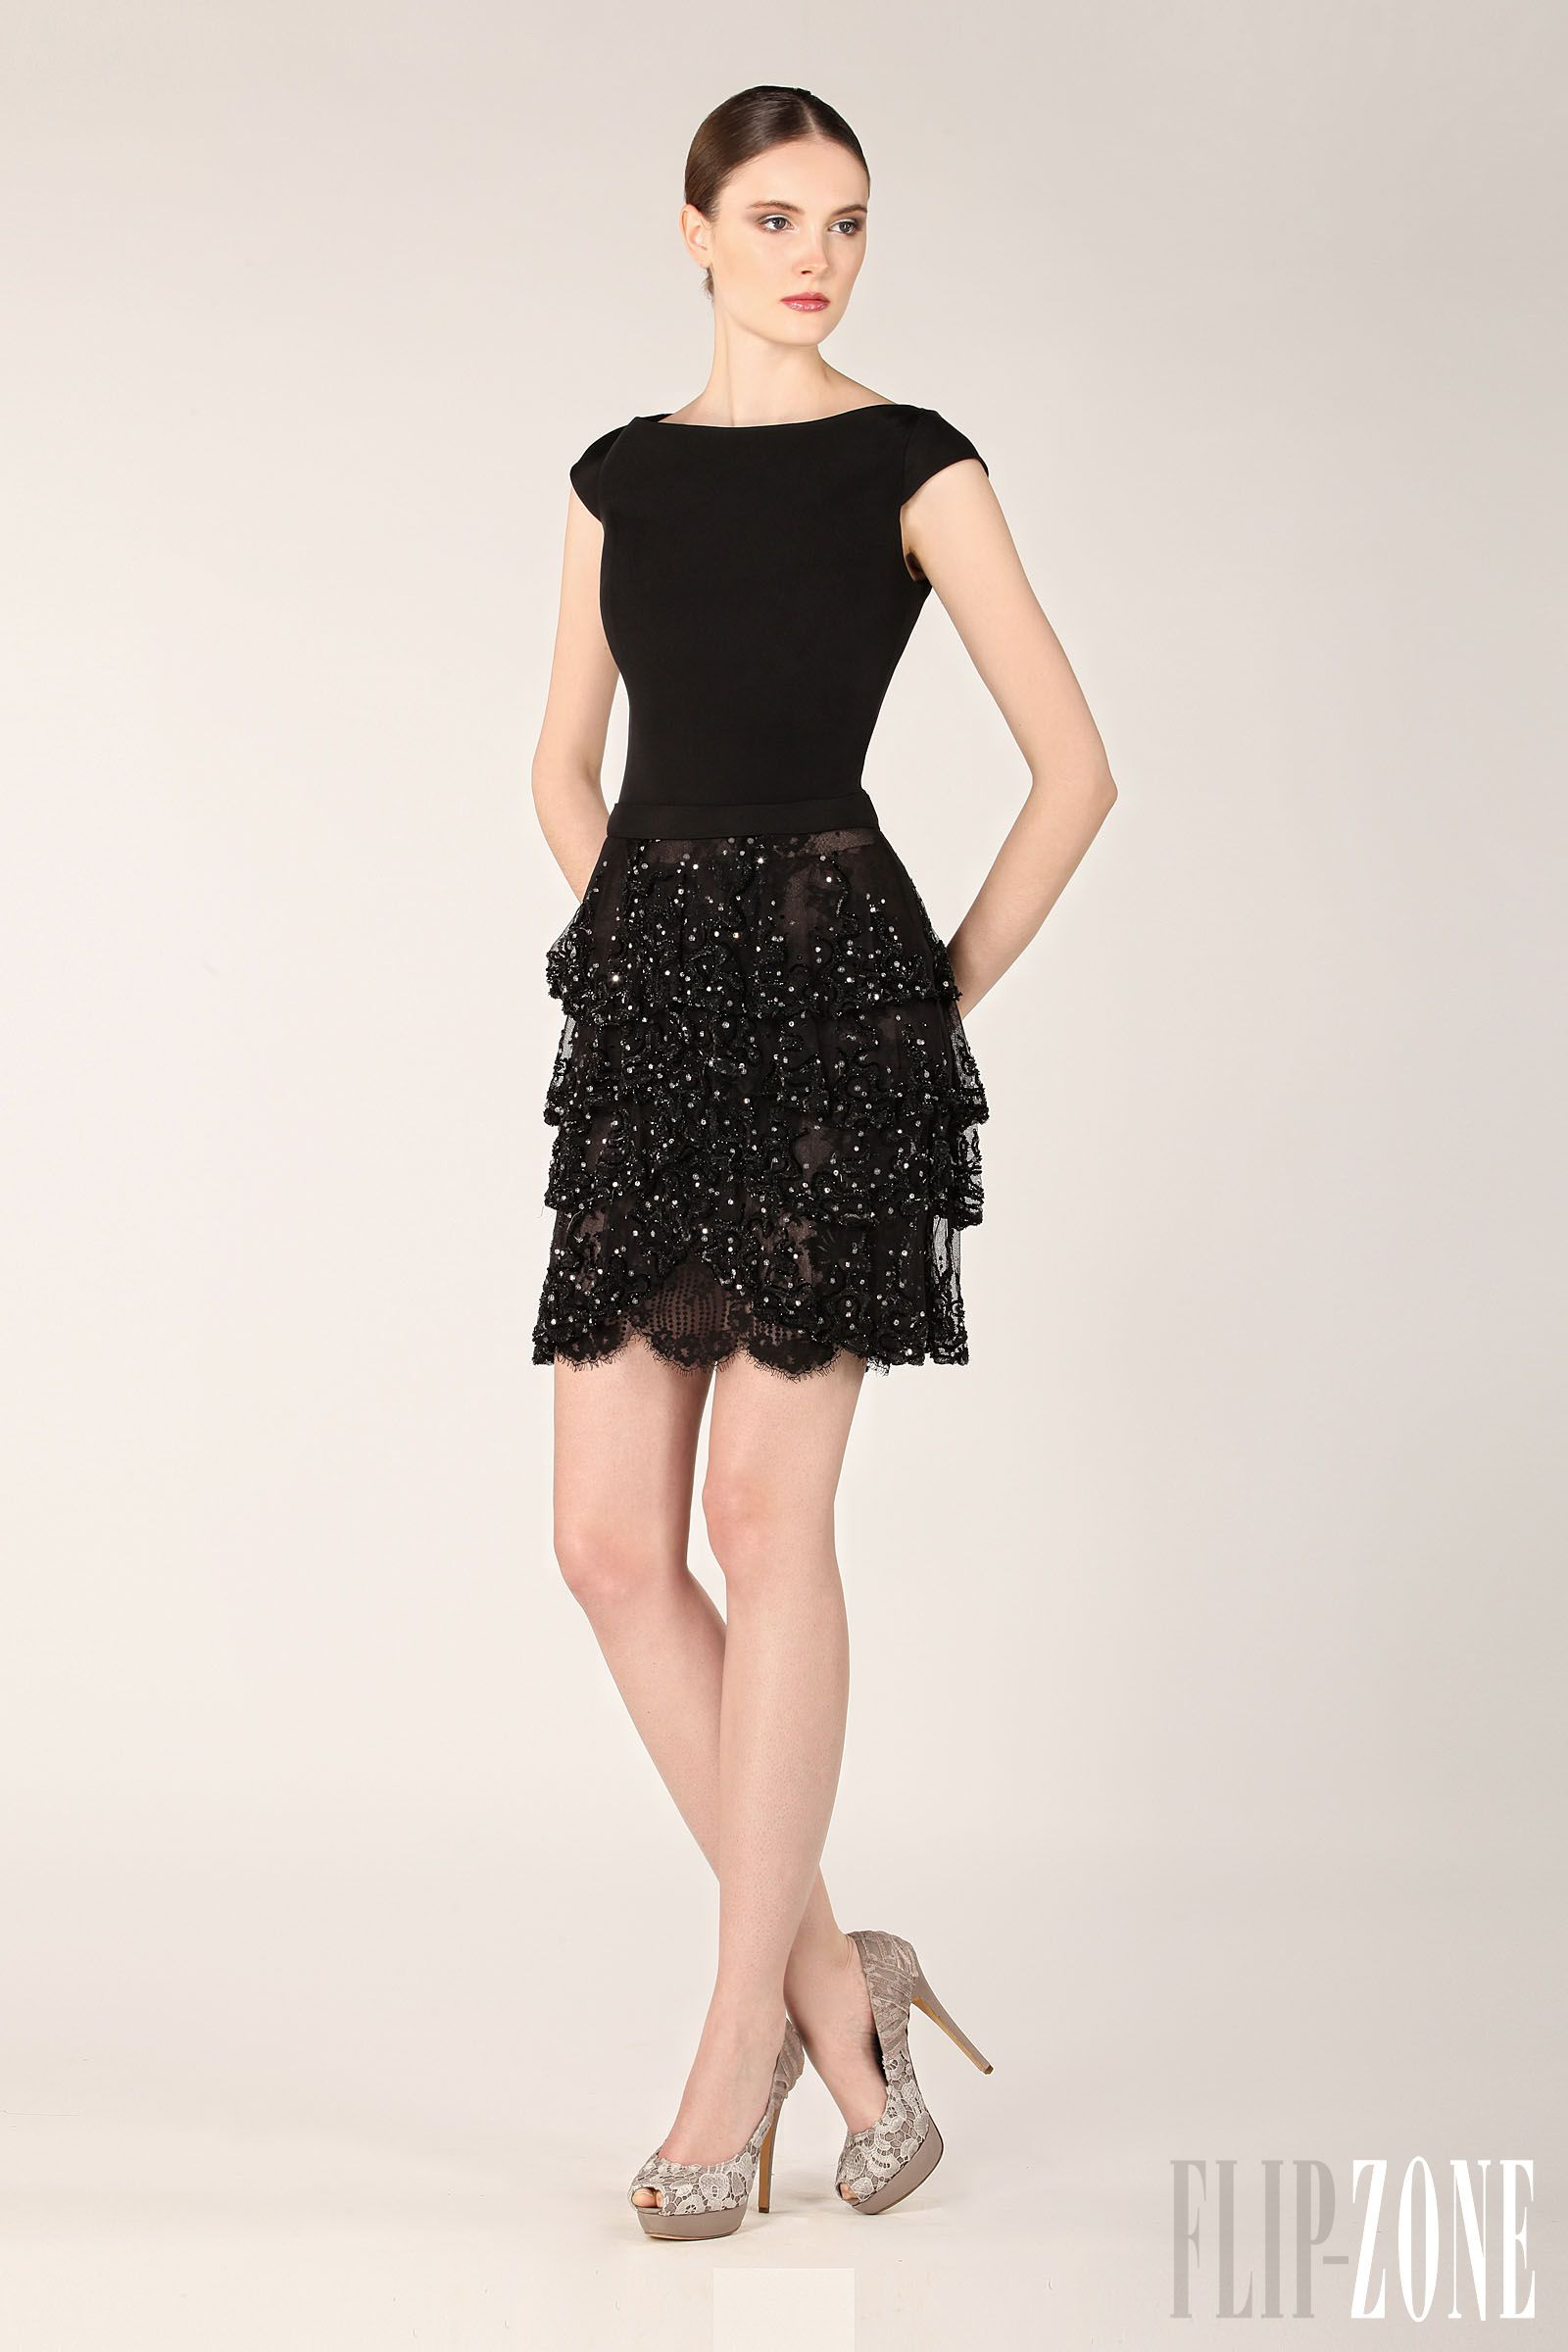 Cdecbbbeaefeacecoptg dresses and